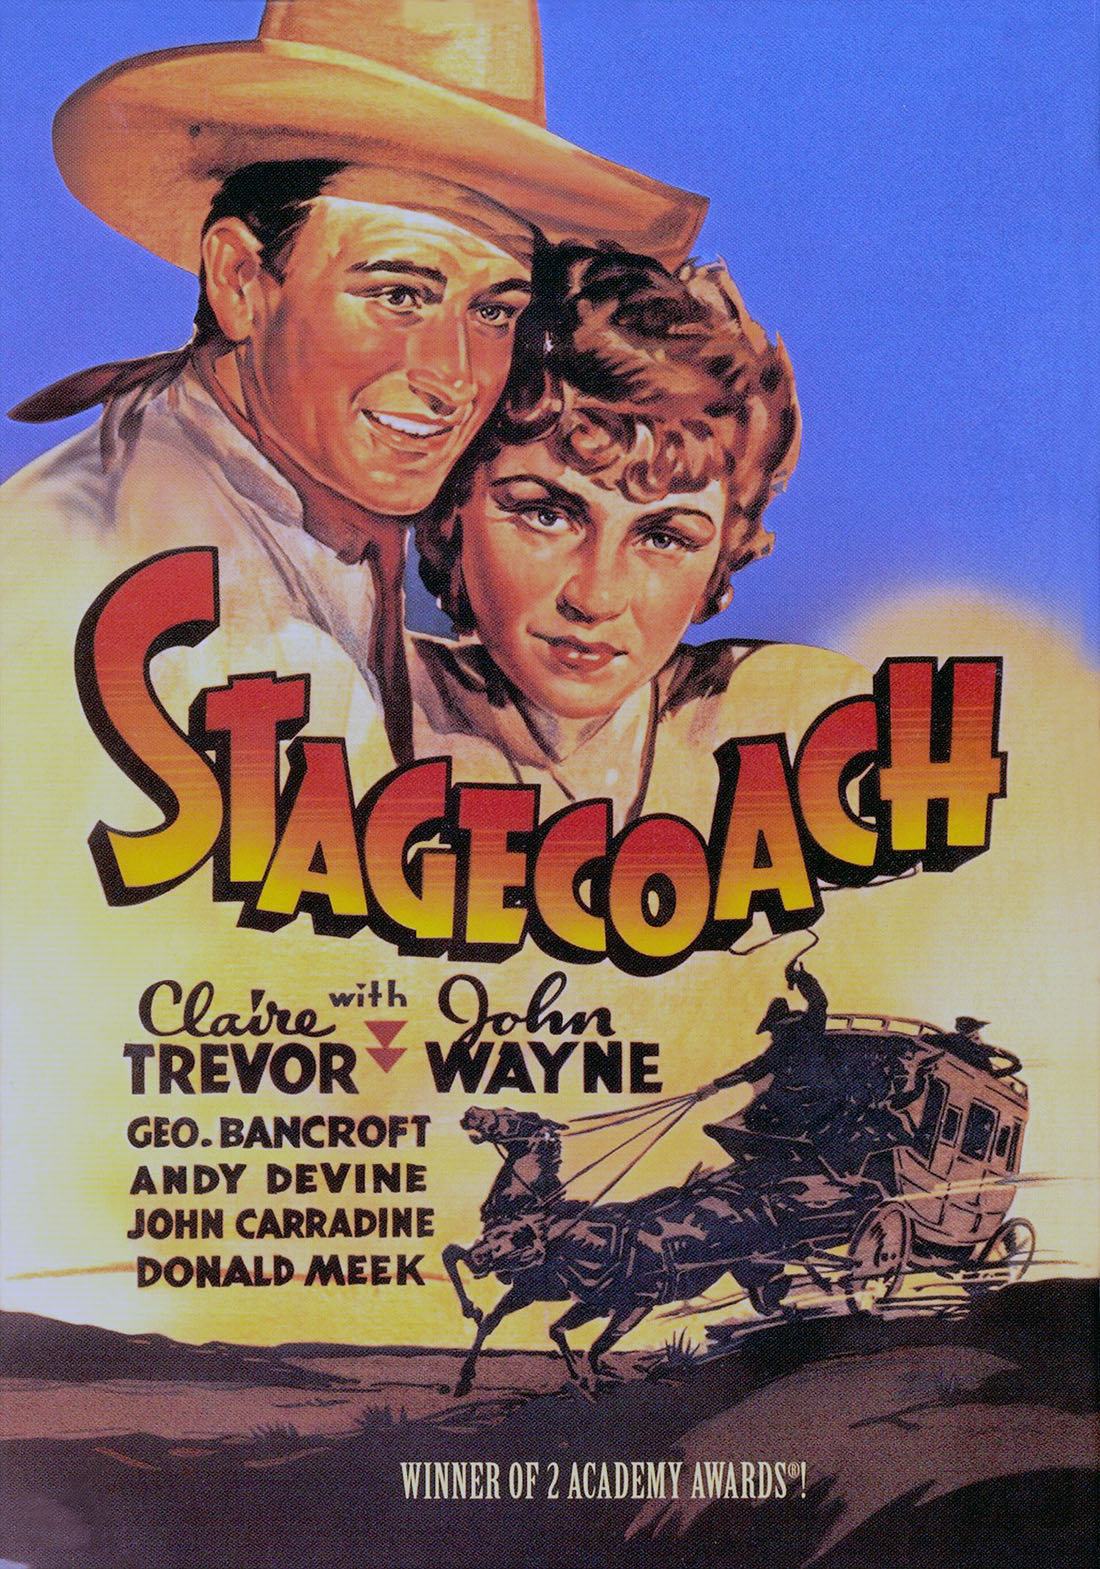 UT Department of Theatre and Film presents Stagecoach as part of its First Friday on Film Series